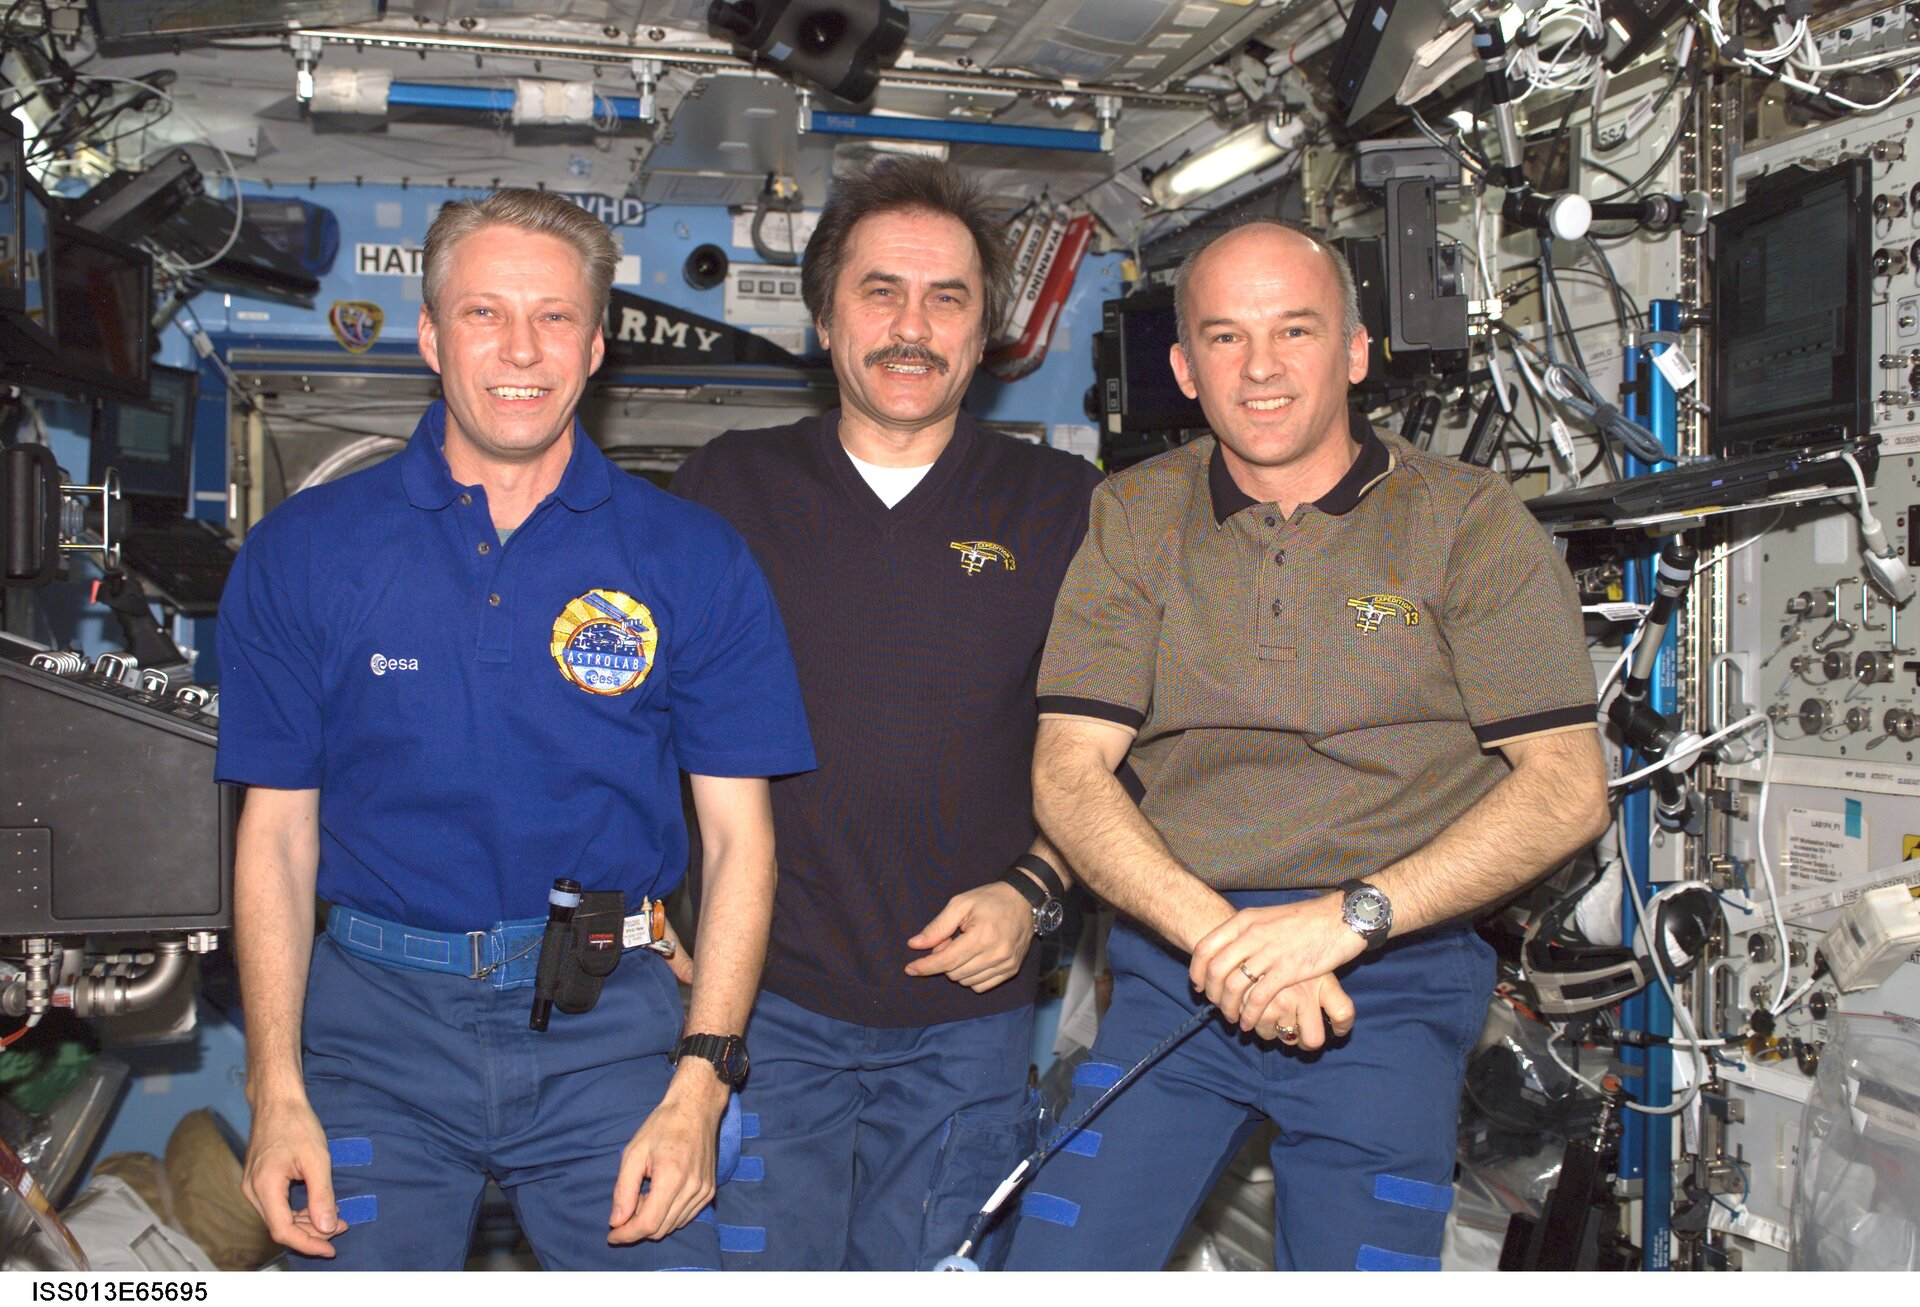 Expedition 13 crew: Thomas Reiter, Pavel Vinogradov and Jeff Williams